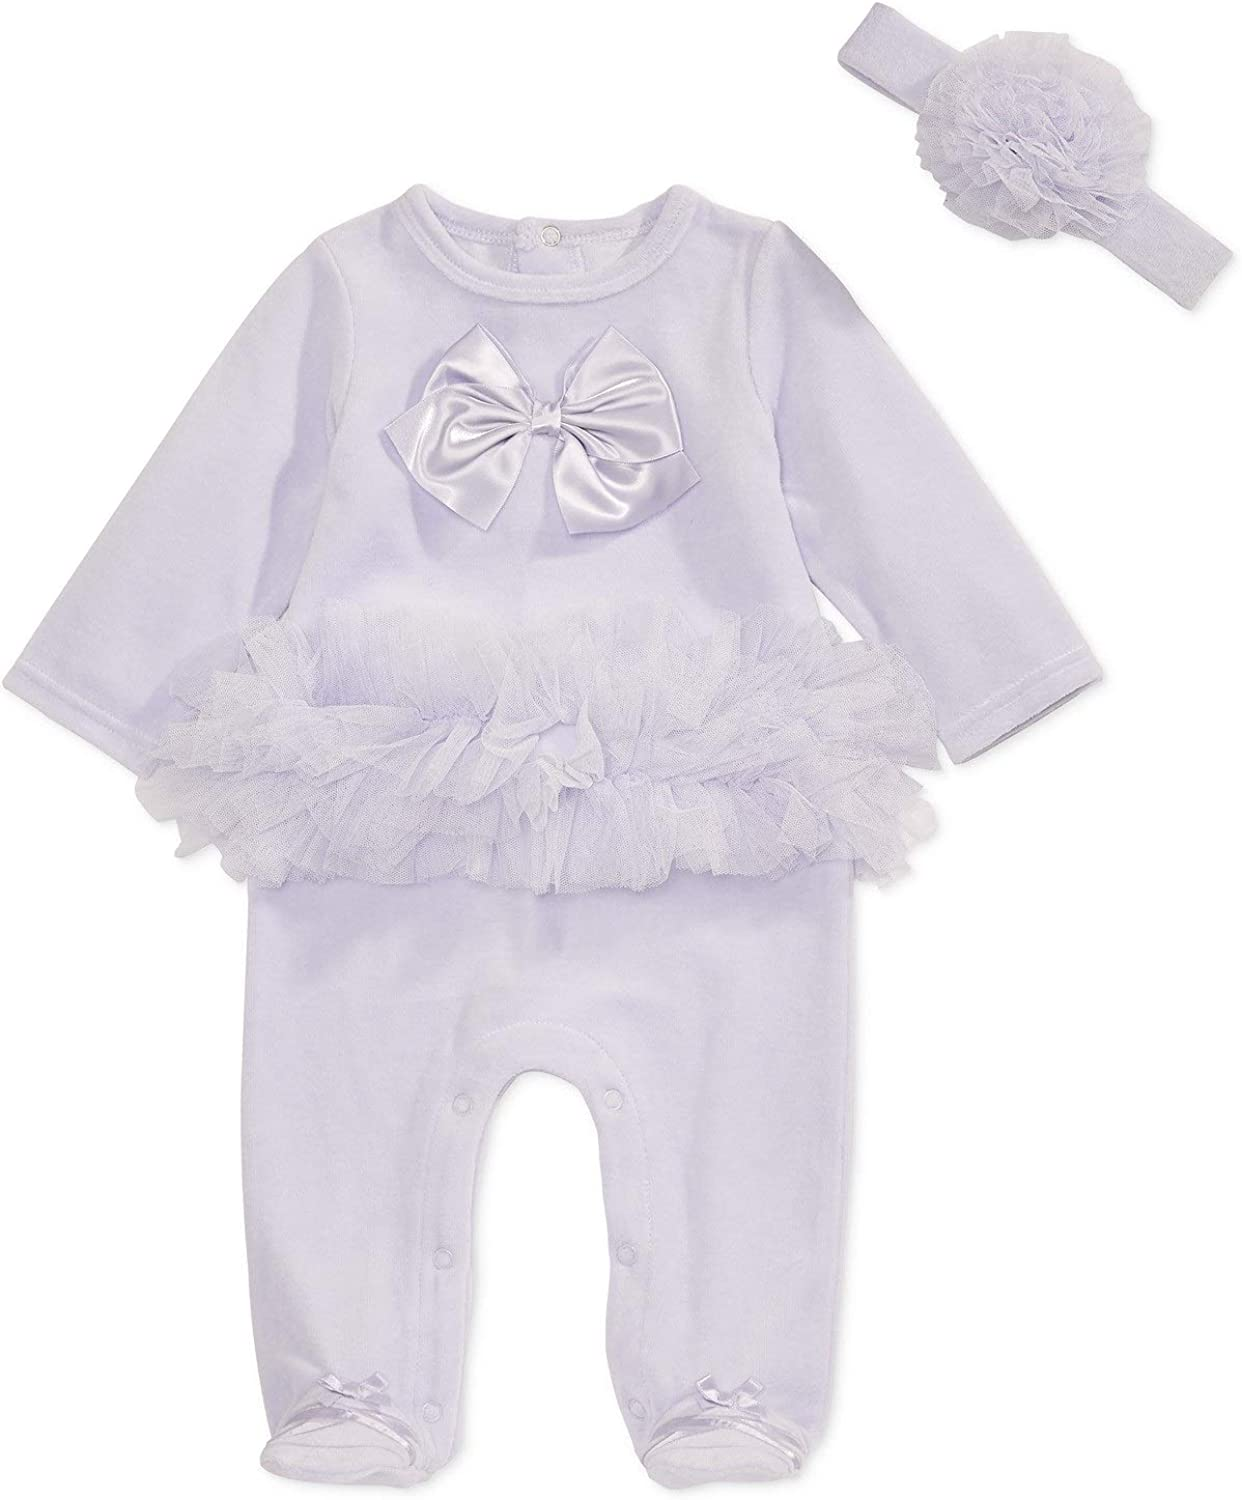 0-3 Months First Impressions Baby Girls 2-Pc Ballerina Footed Coverall /& Headband Set